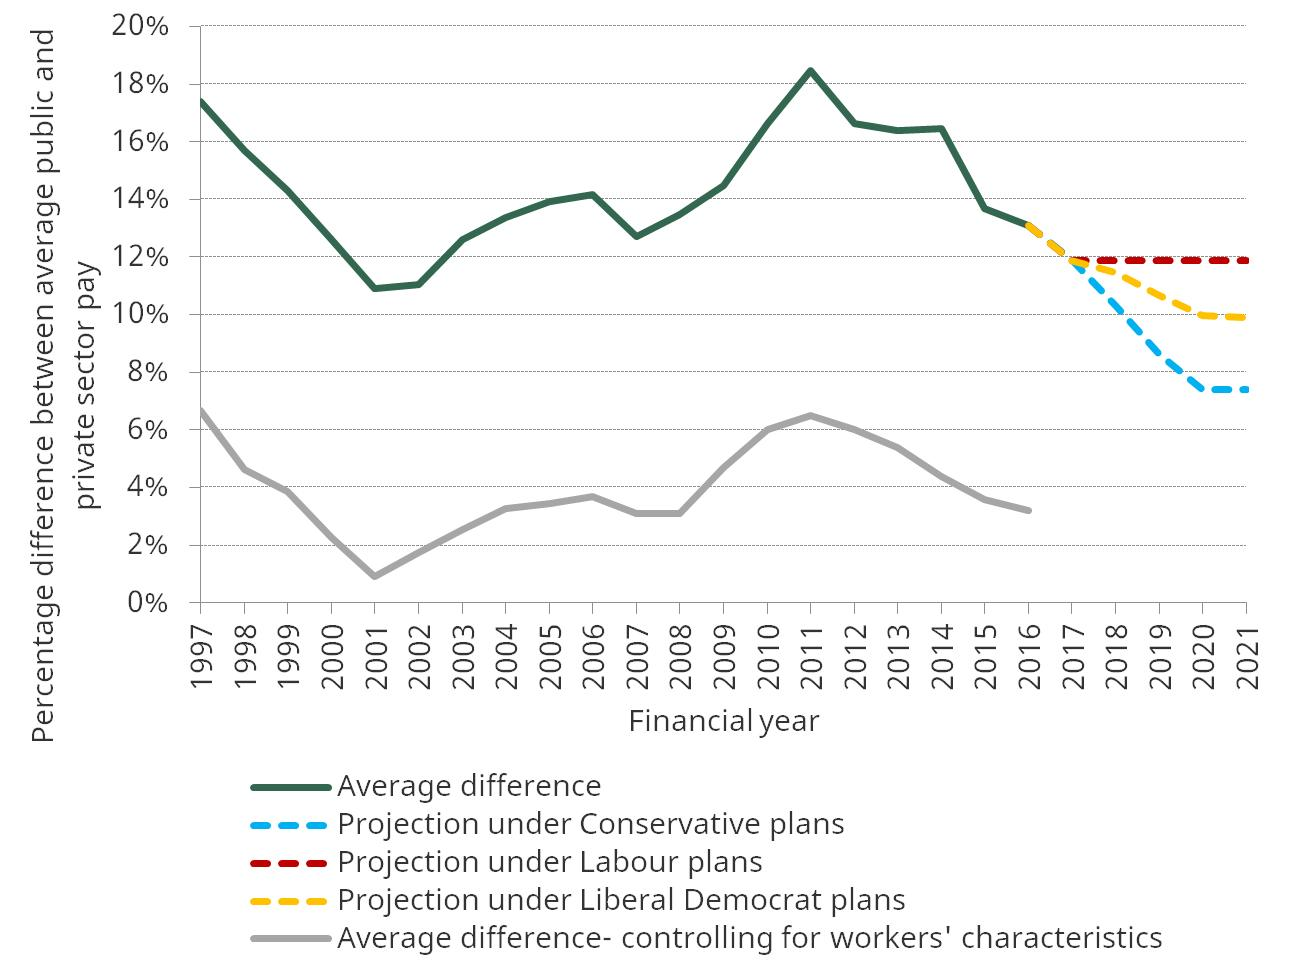 Figure 3. Difference between average public and private sector pay, including projections under different parties' policies